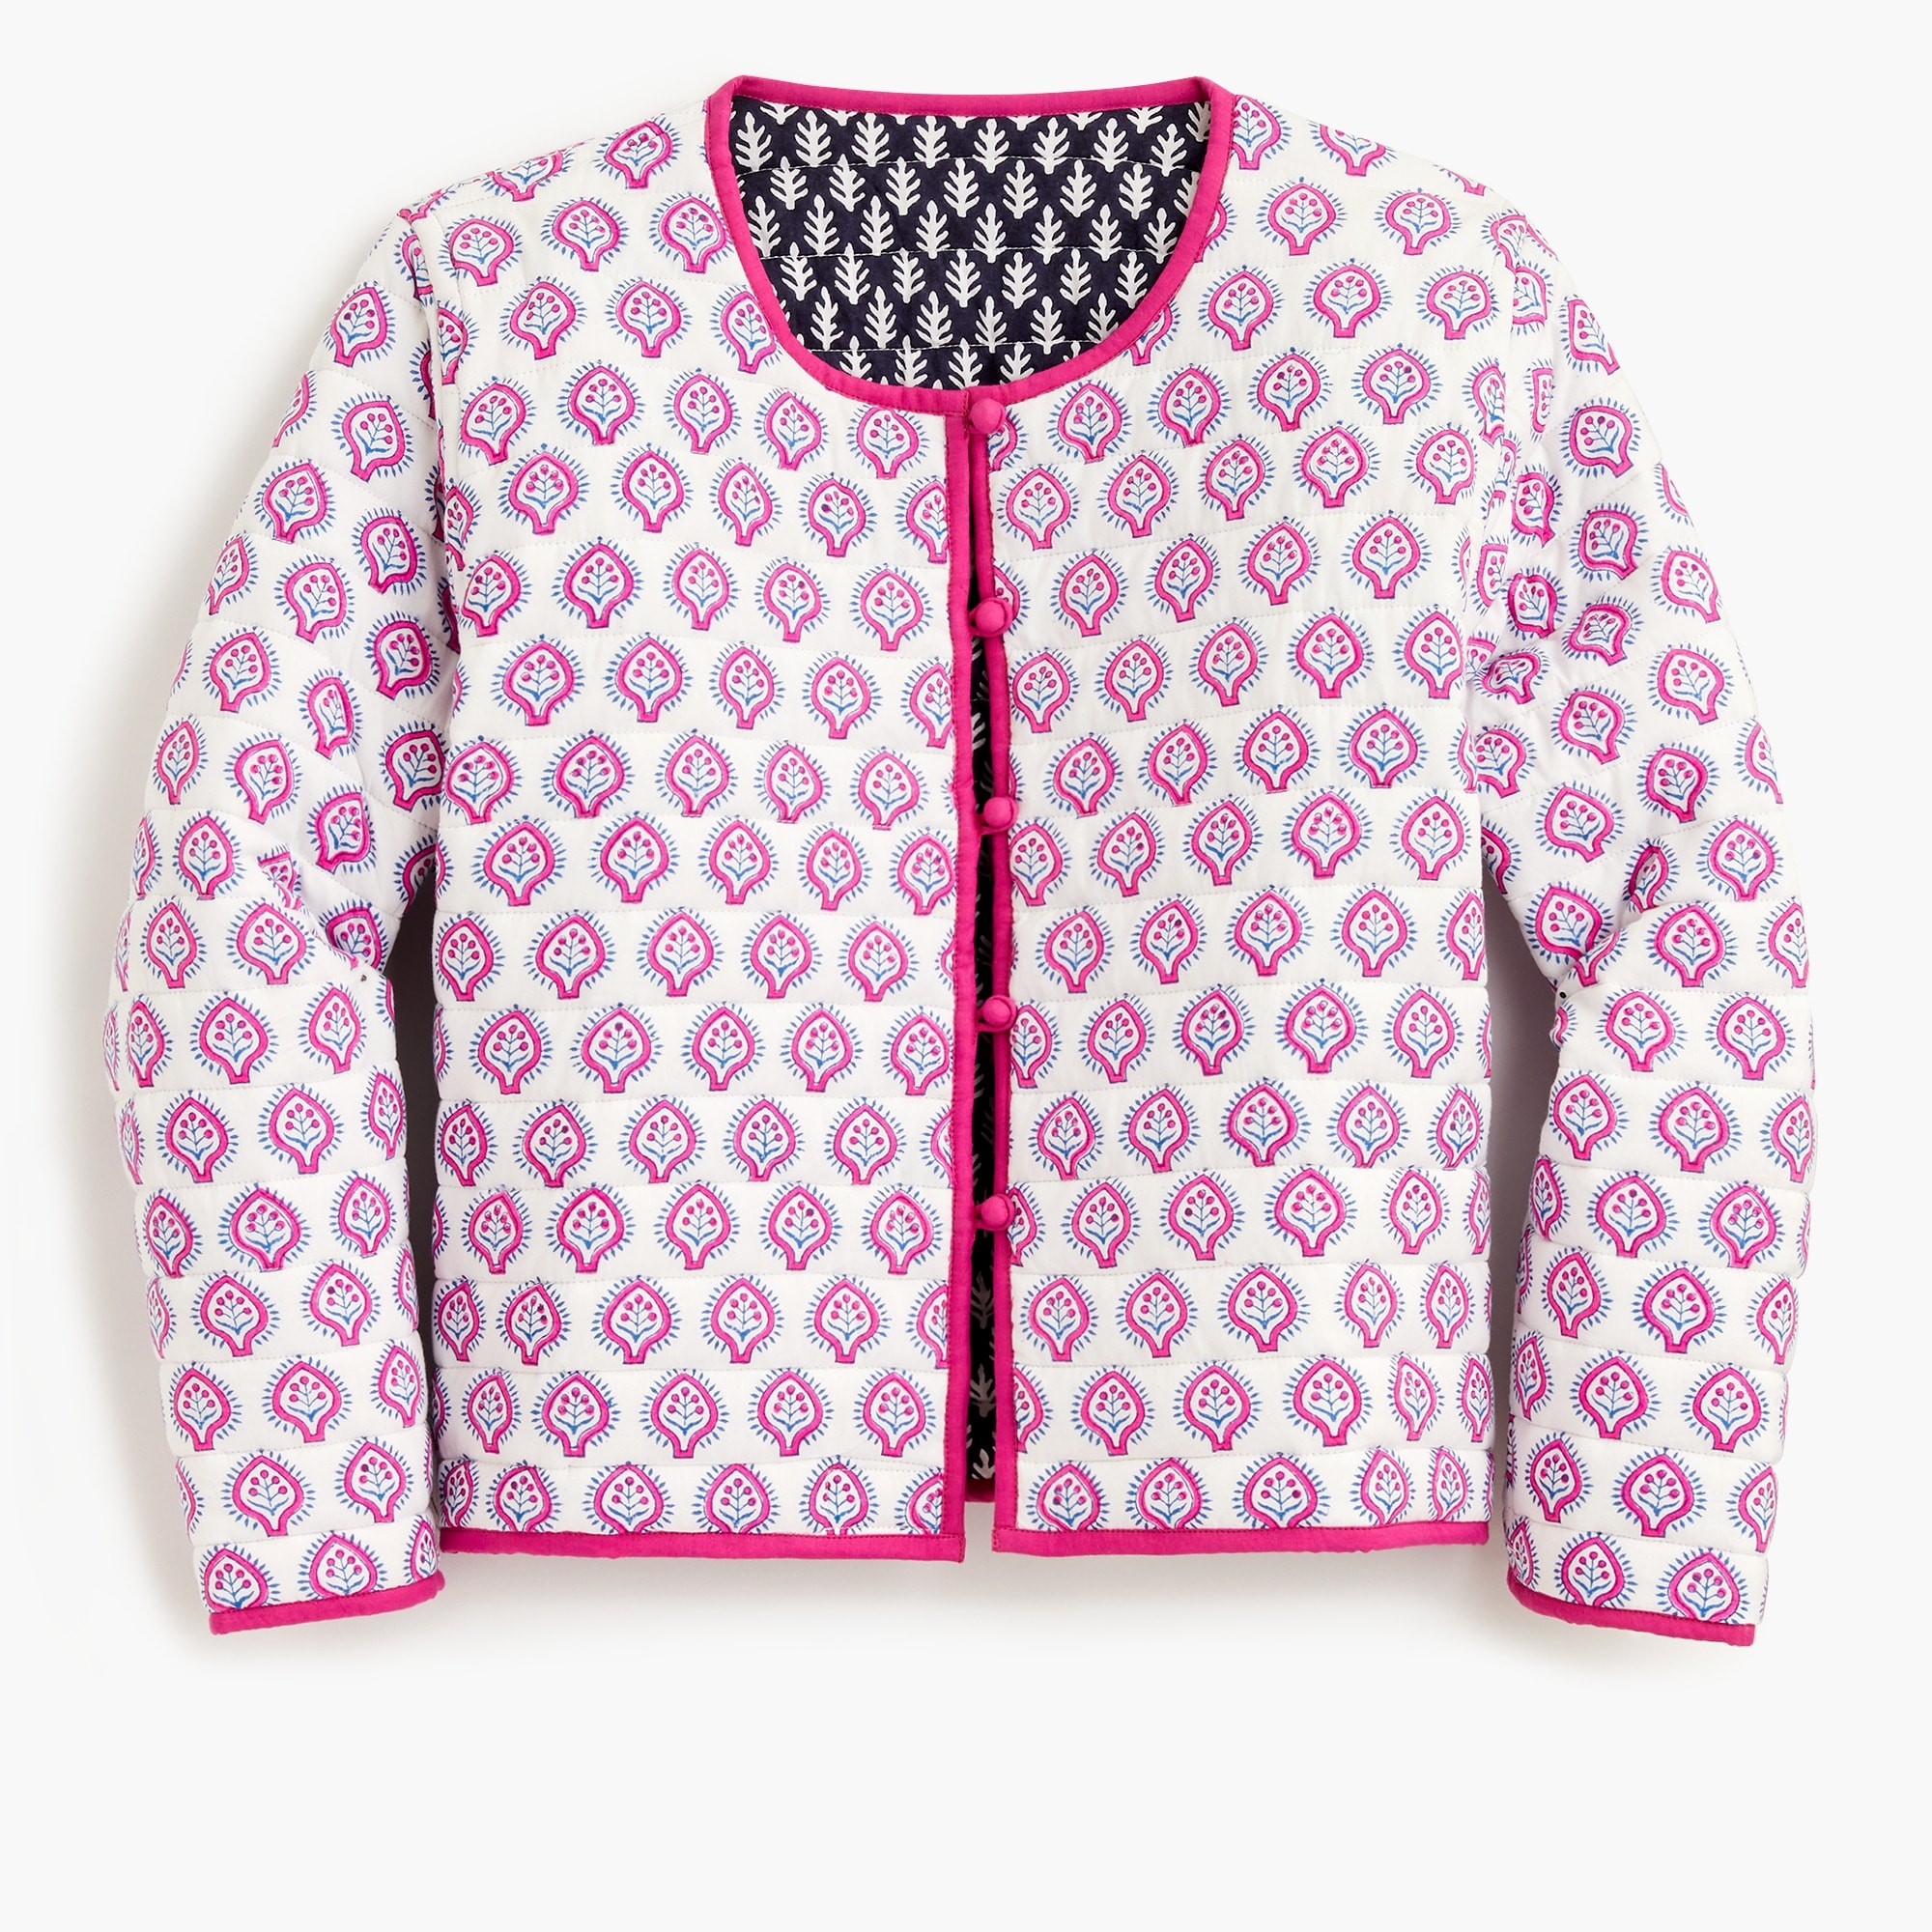 SZ Blockprints™ for J.Crew reversible quilted jacket in lilac pineapple